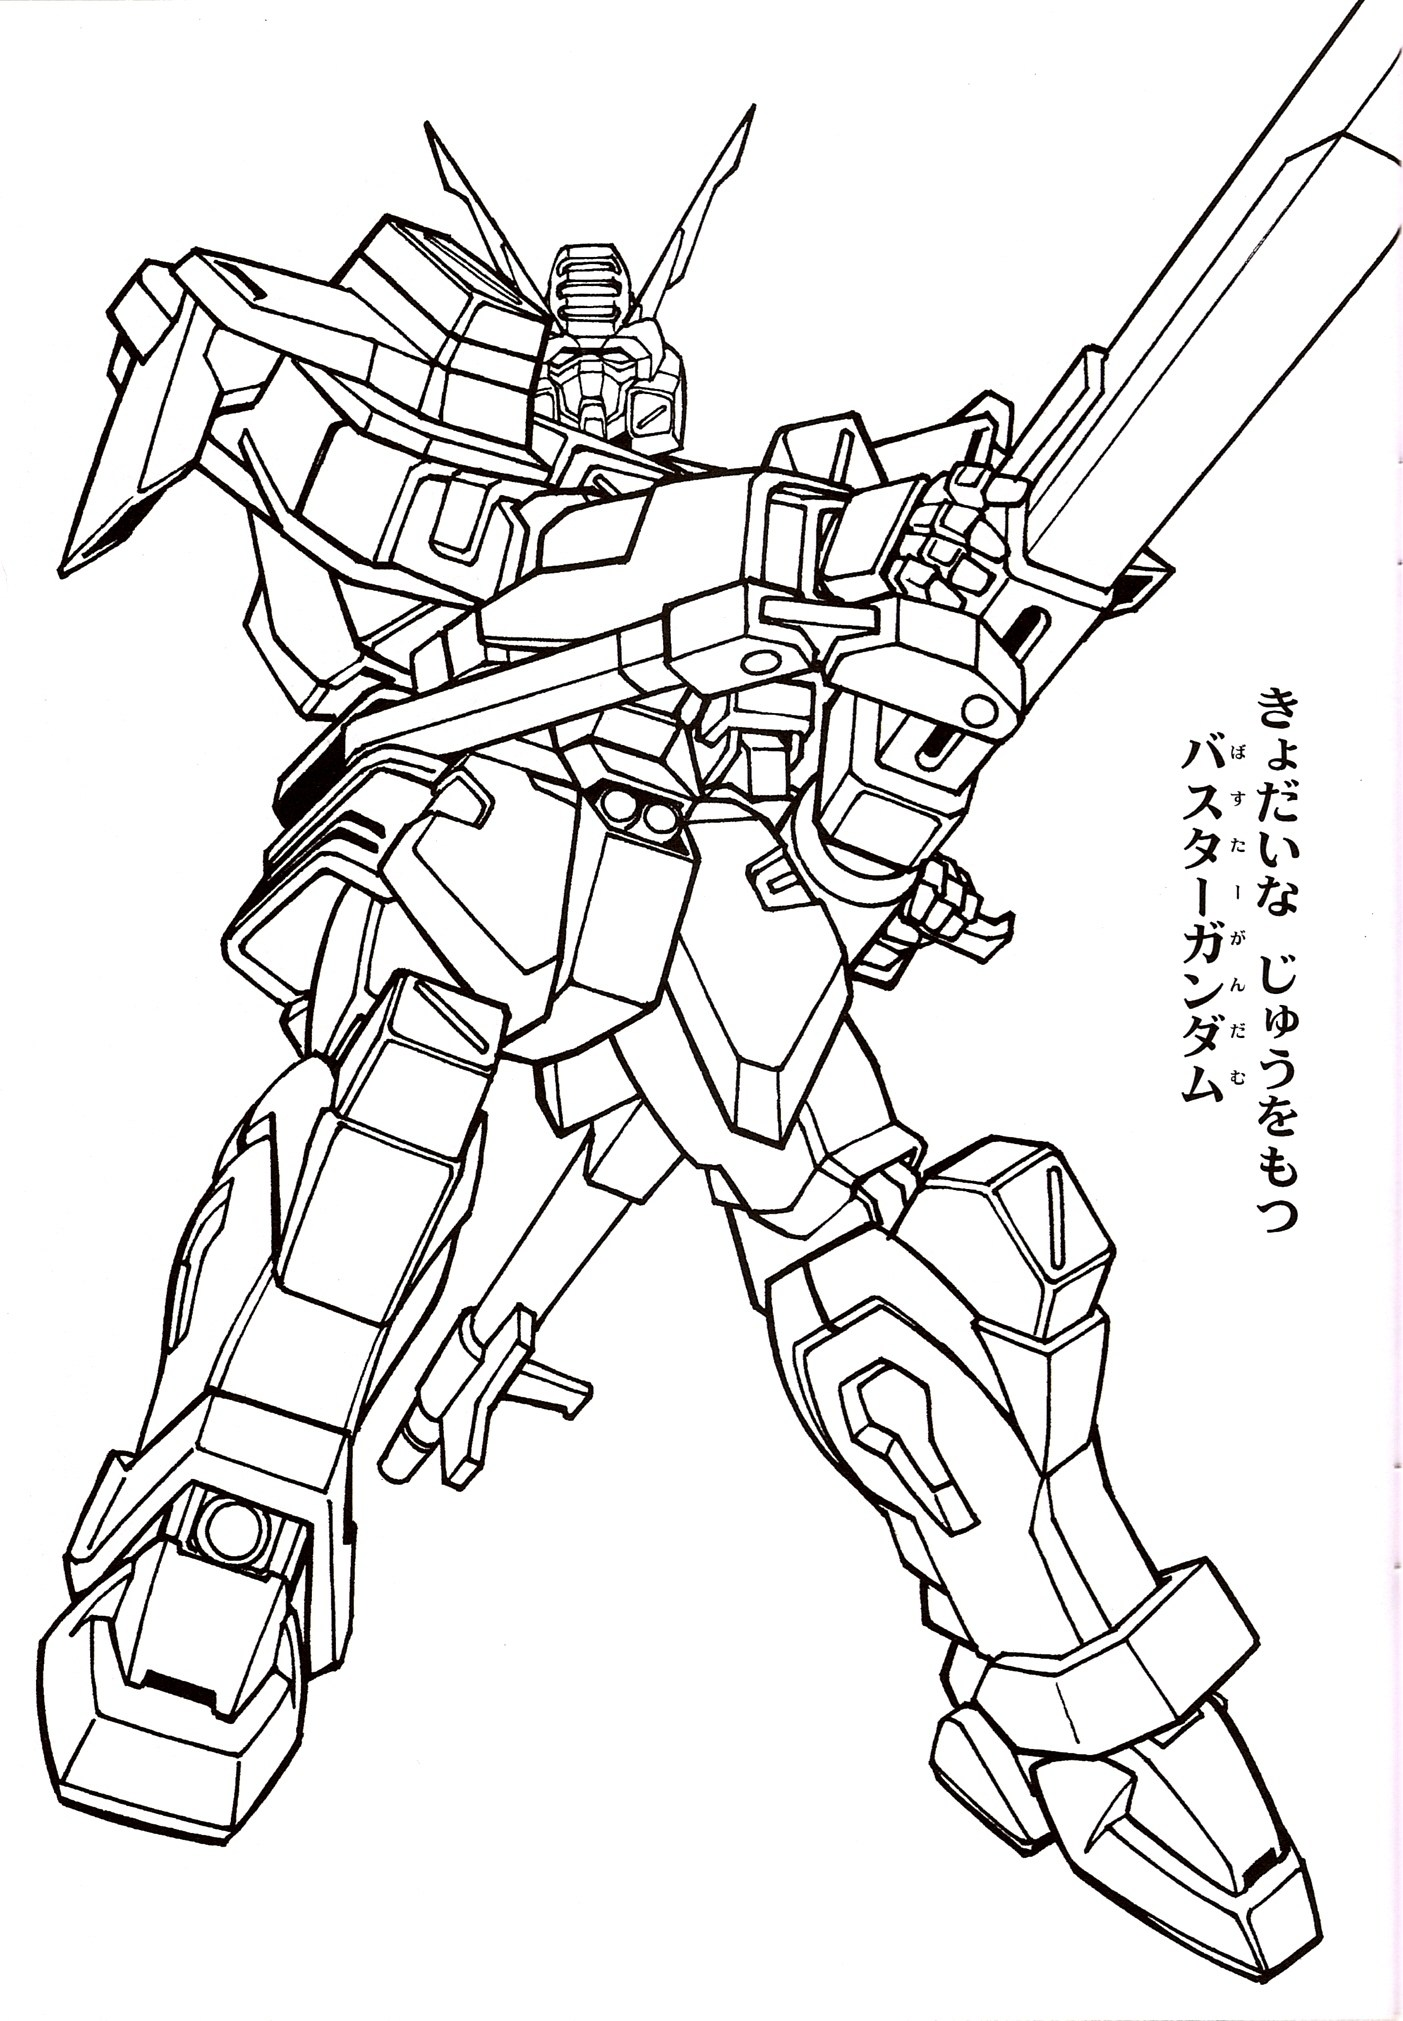 Gundam Coloring Pages : gundam, coloring, pages, Gundam, Japanese, Anime, Coloring, Printable, Pages